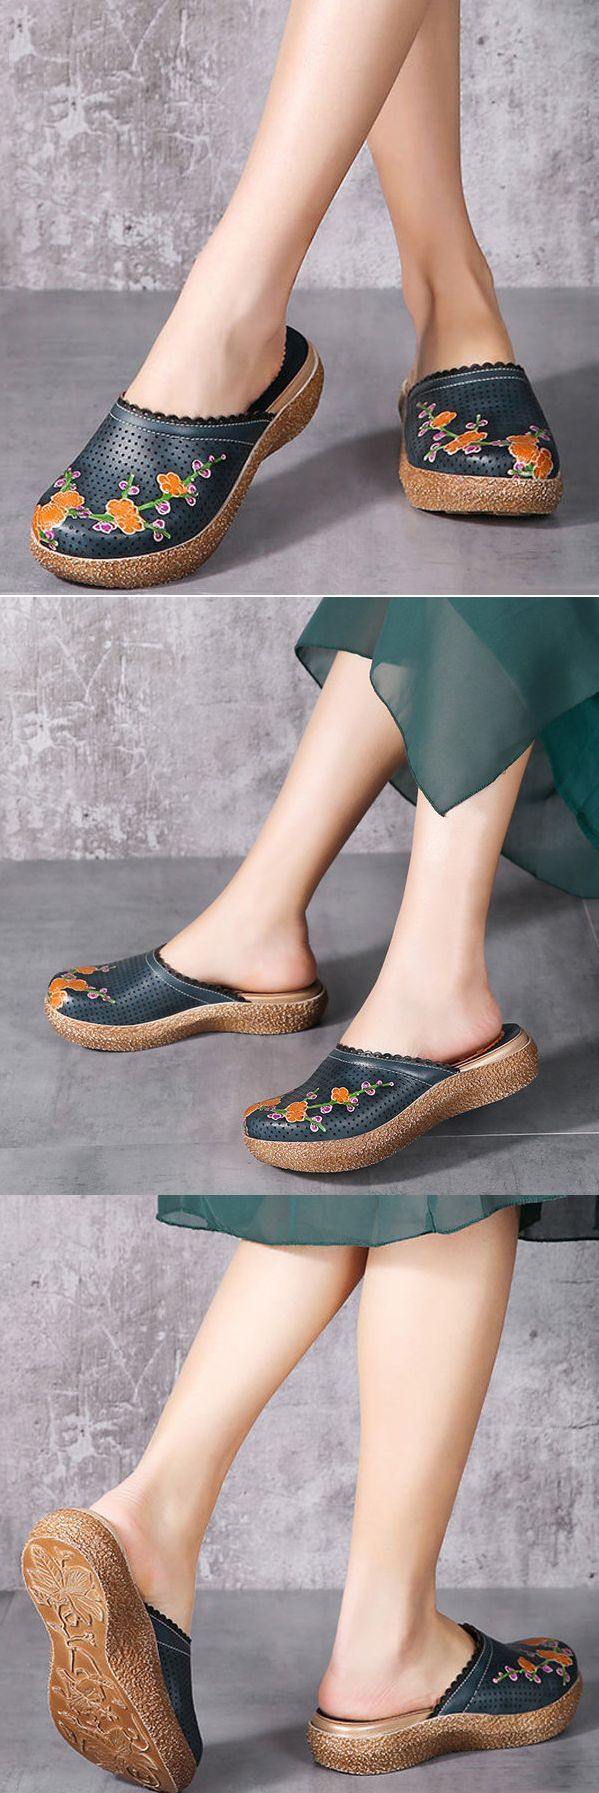 US$51.68 Socofy Original Breathable Flower Print Hollow Out Slippers Slip On Retro Sandals